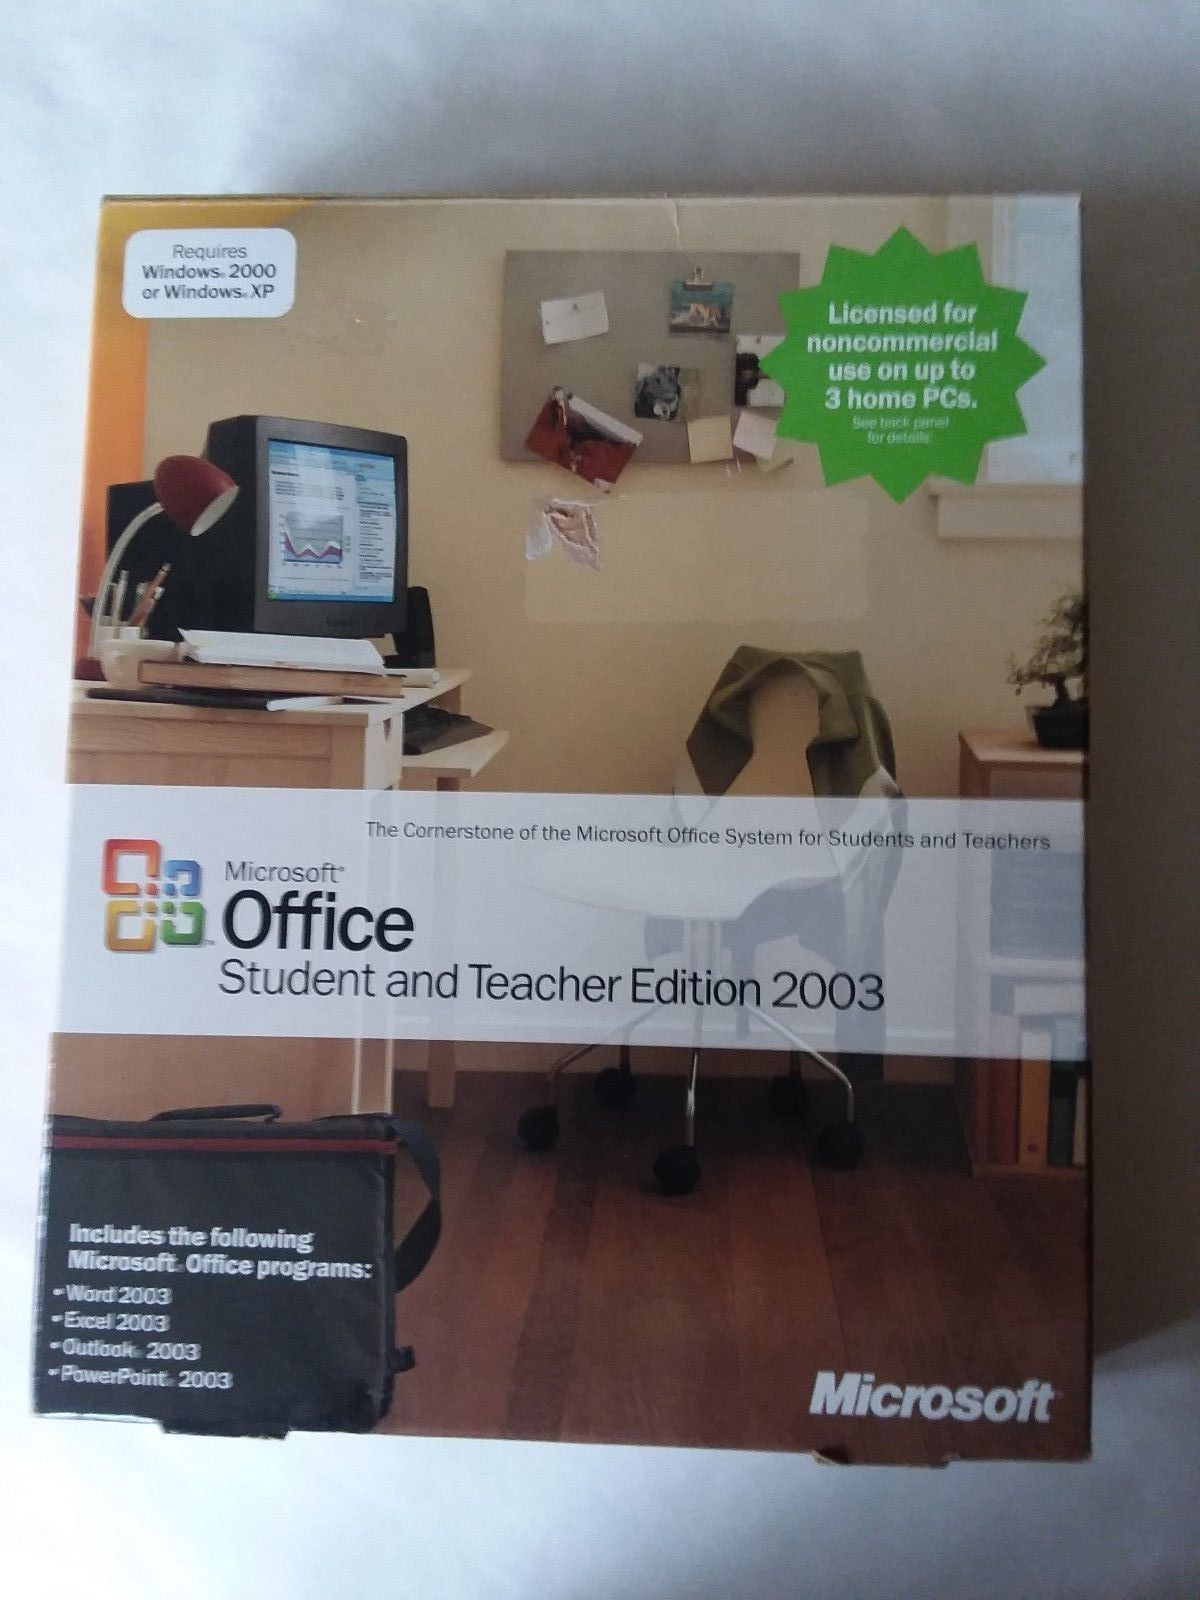 Microsoft Office Student and Teacher Edition and similar items